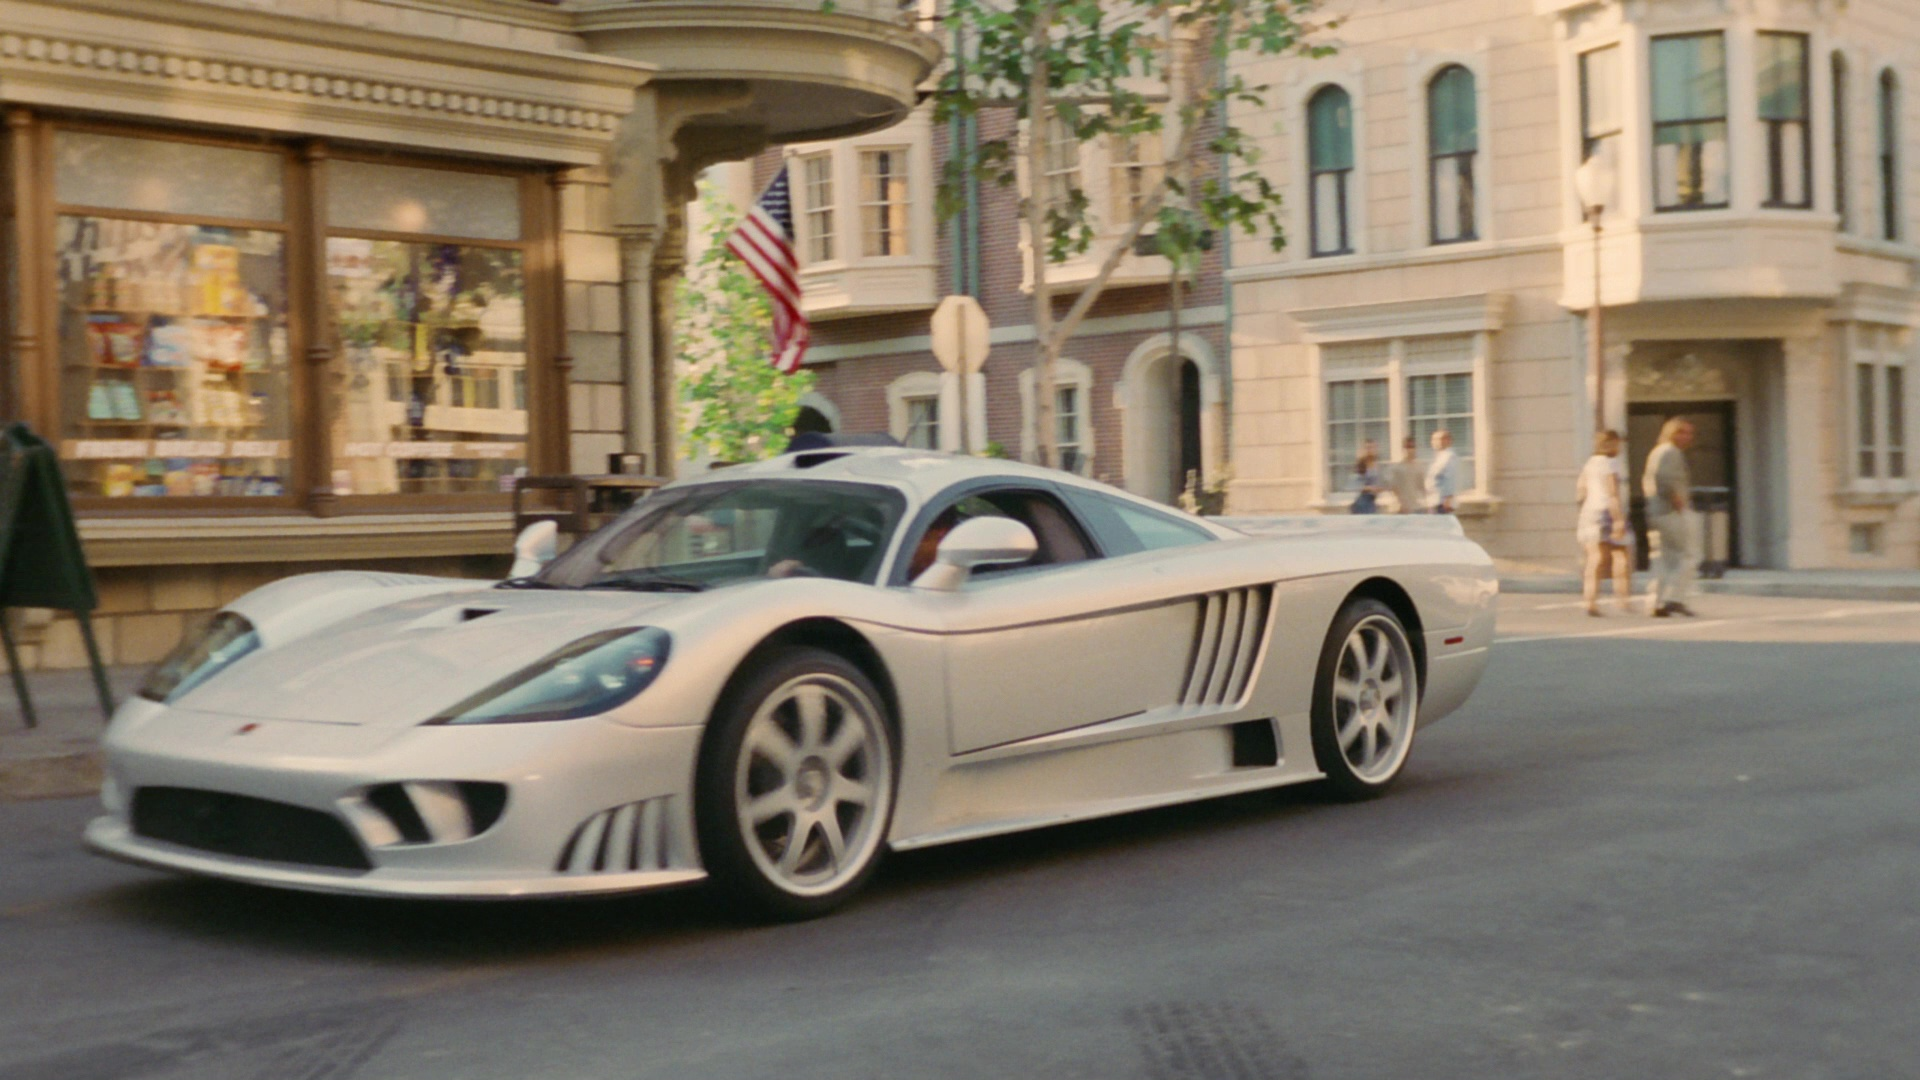 Saleen S7 American Hand Built High Performance Supercar